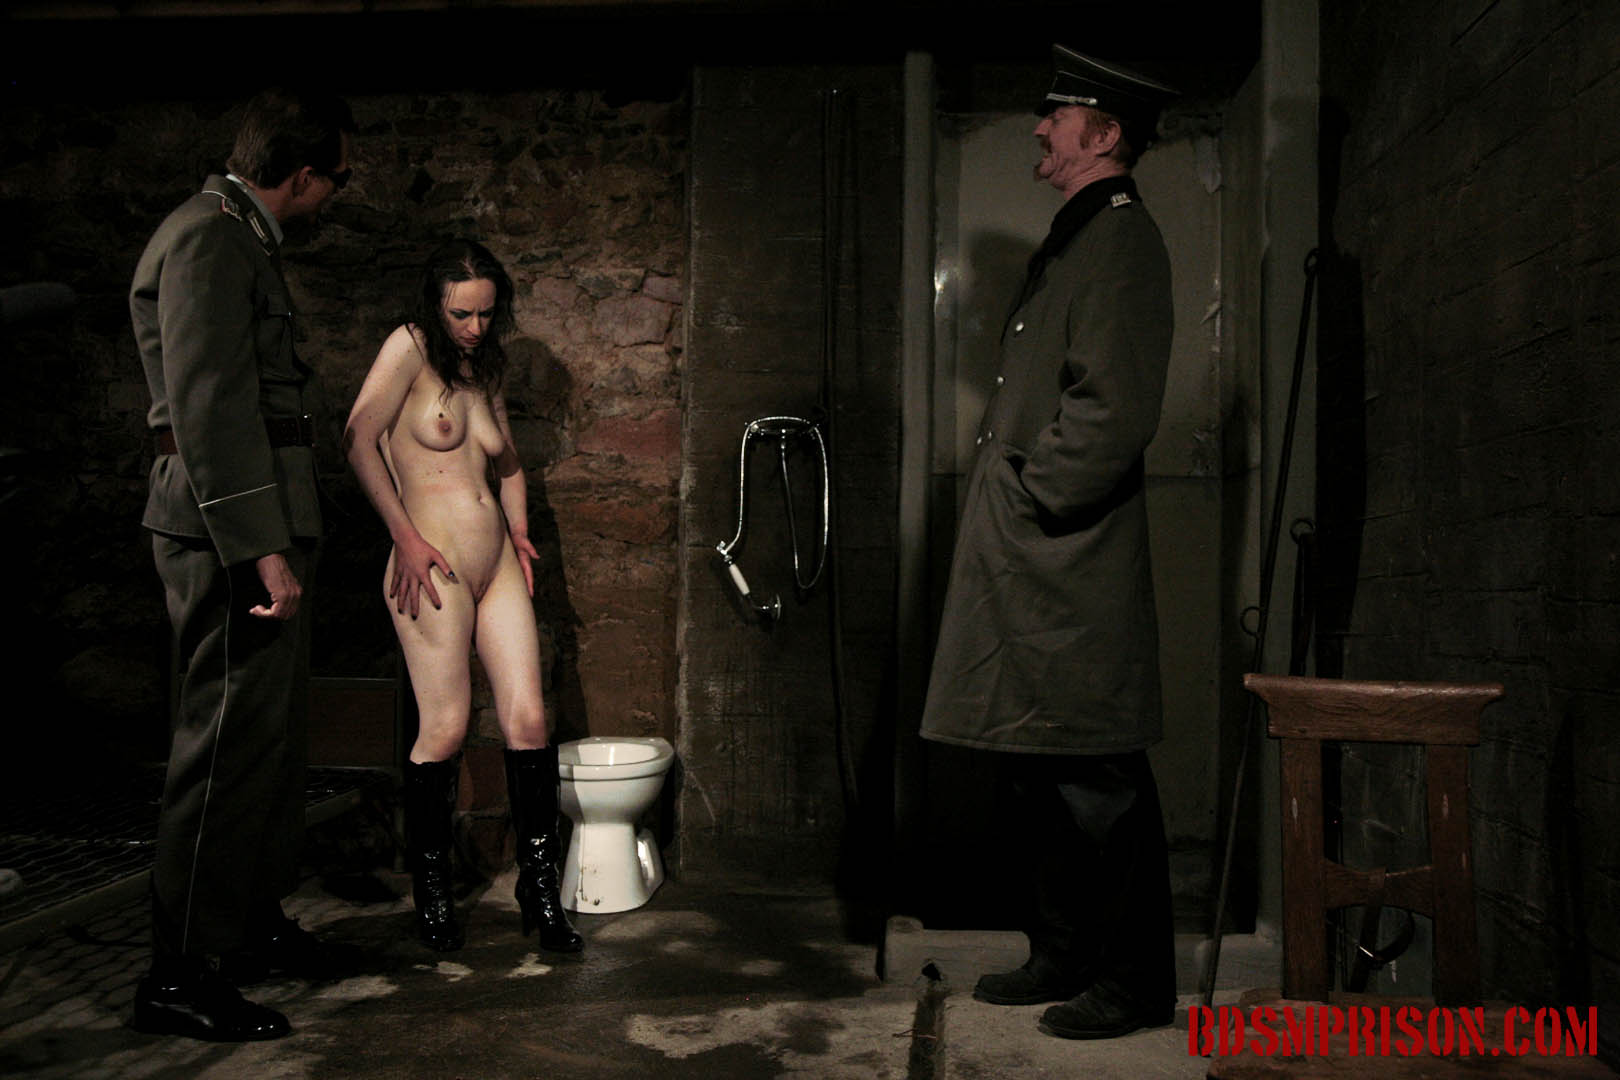 Domination degradation deepthroat bj with nadja. Nadja is punish daily by two prison guards. She's been sentenced to lifelong sex slave traininig. She wakes up bound to a chair with a sack over her head in the basement of our institute. She must endure two BDSM Prison Masters, domination, humiliation, fingering, spanking, smacking, whipping, bondage, breast, cunt and nipple torment.